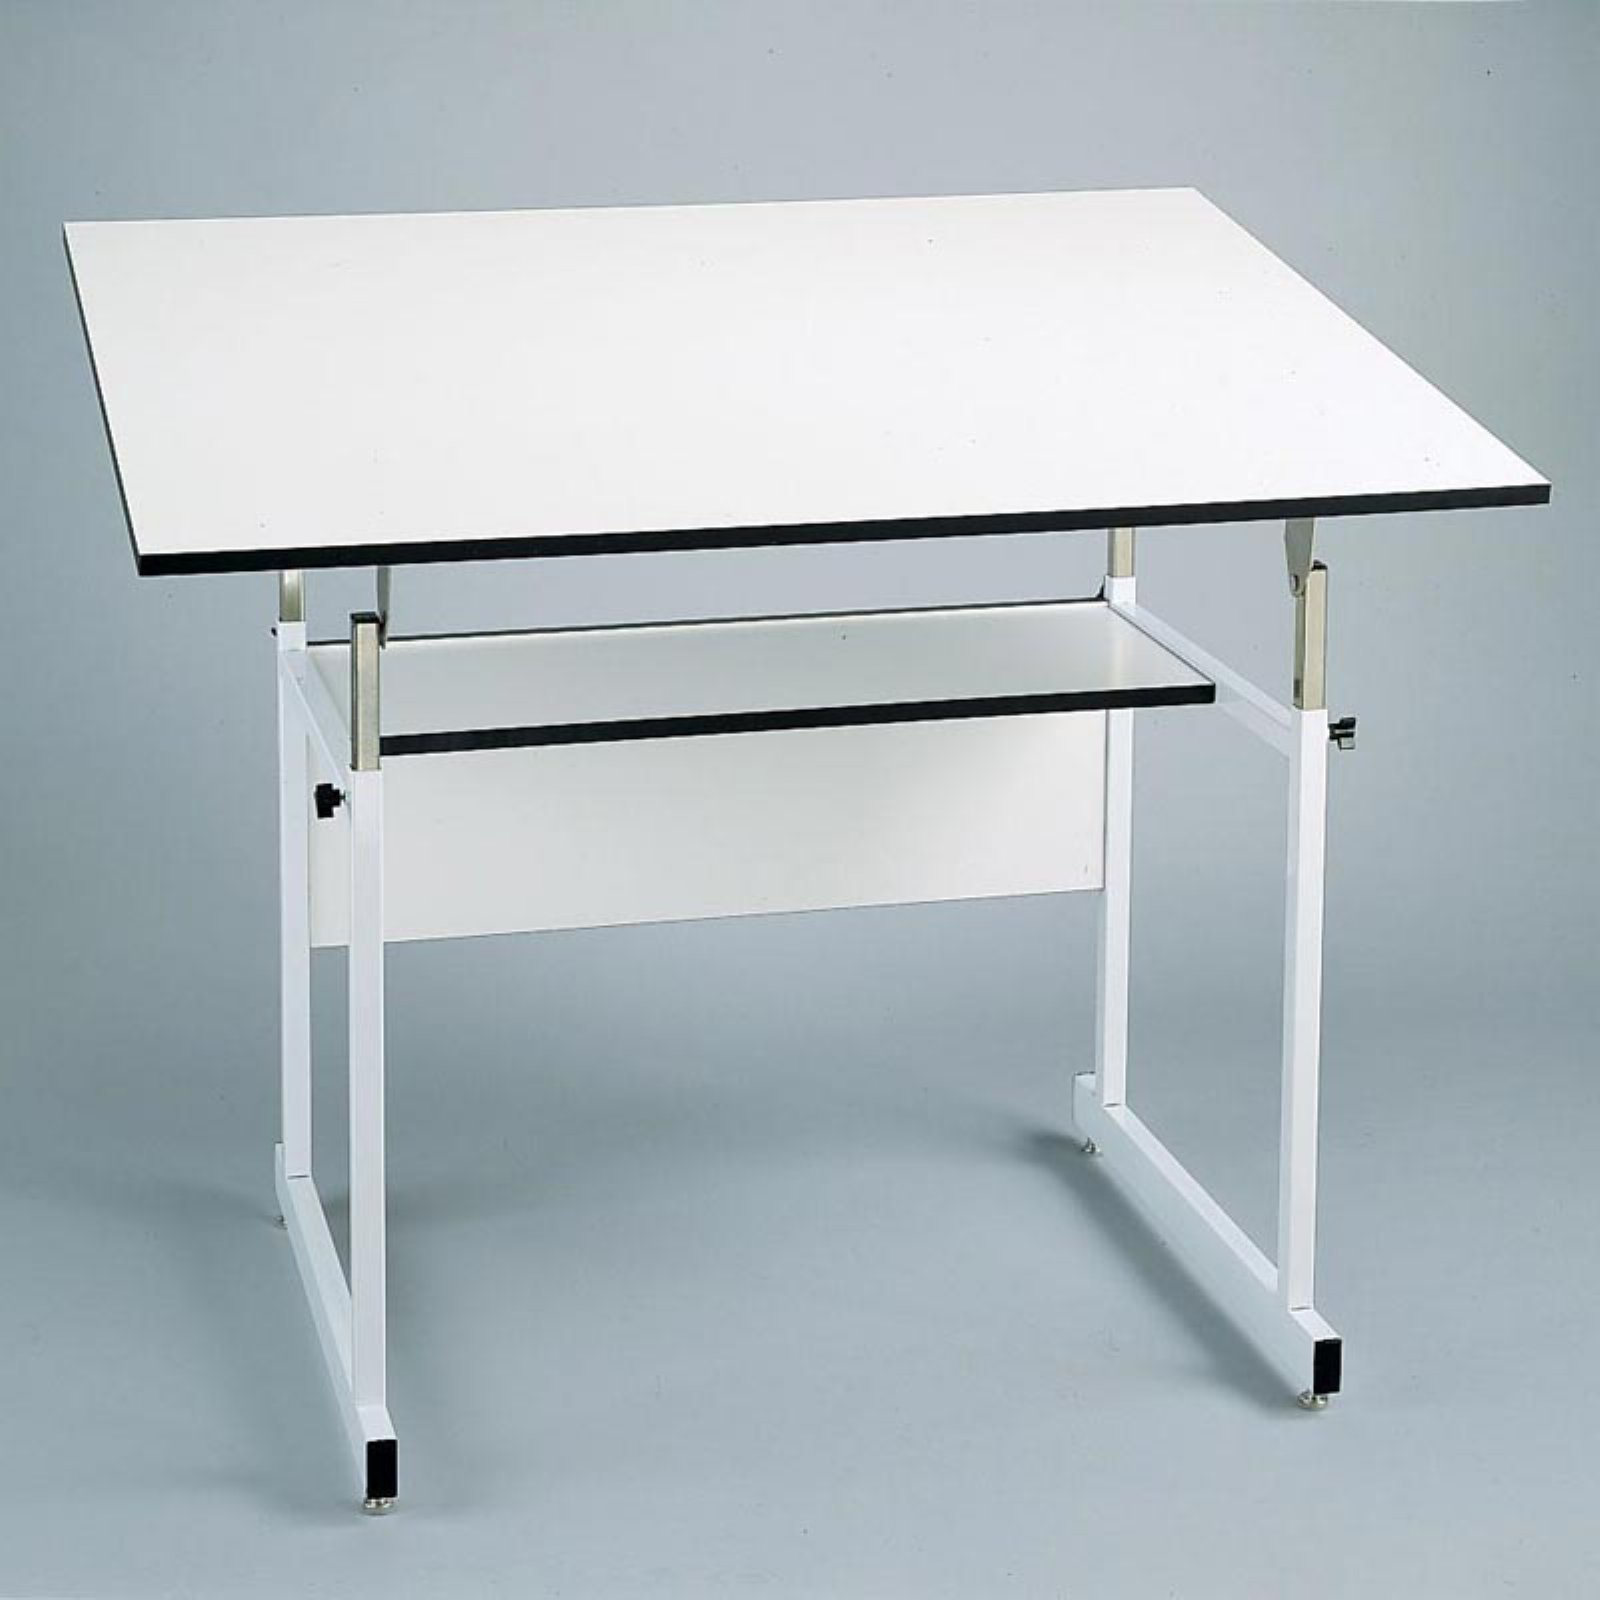 Alvin Workmaster Jr. Adjustable Drafting Table